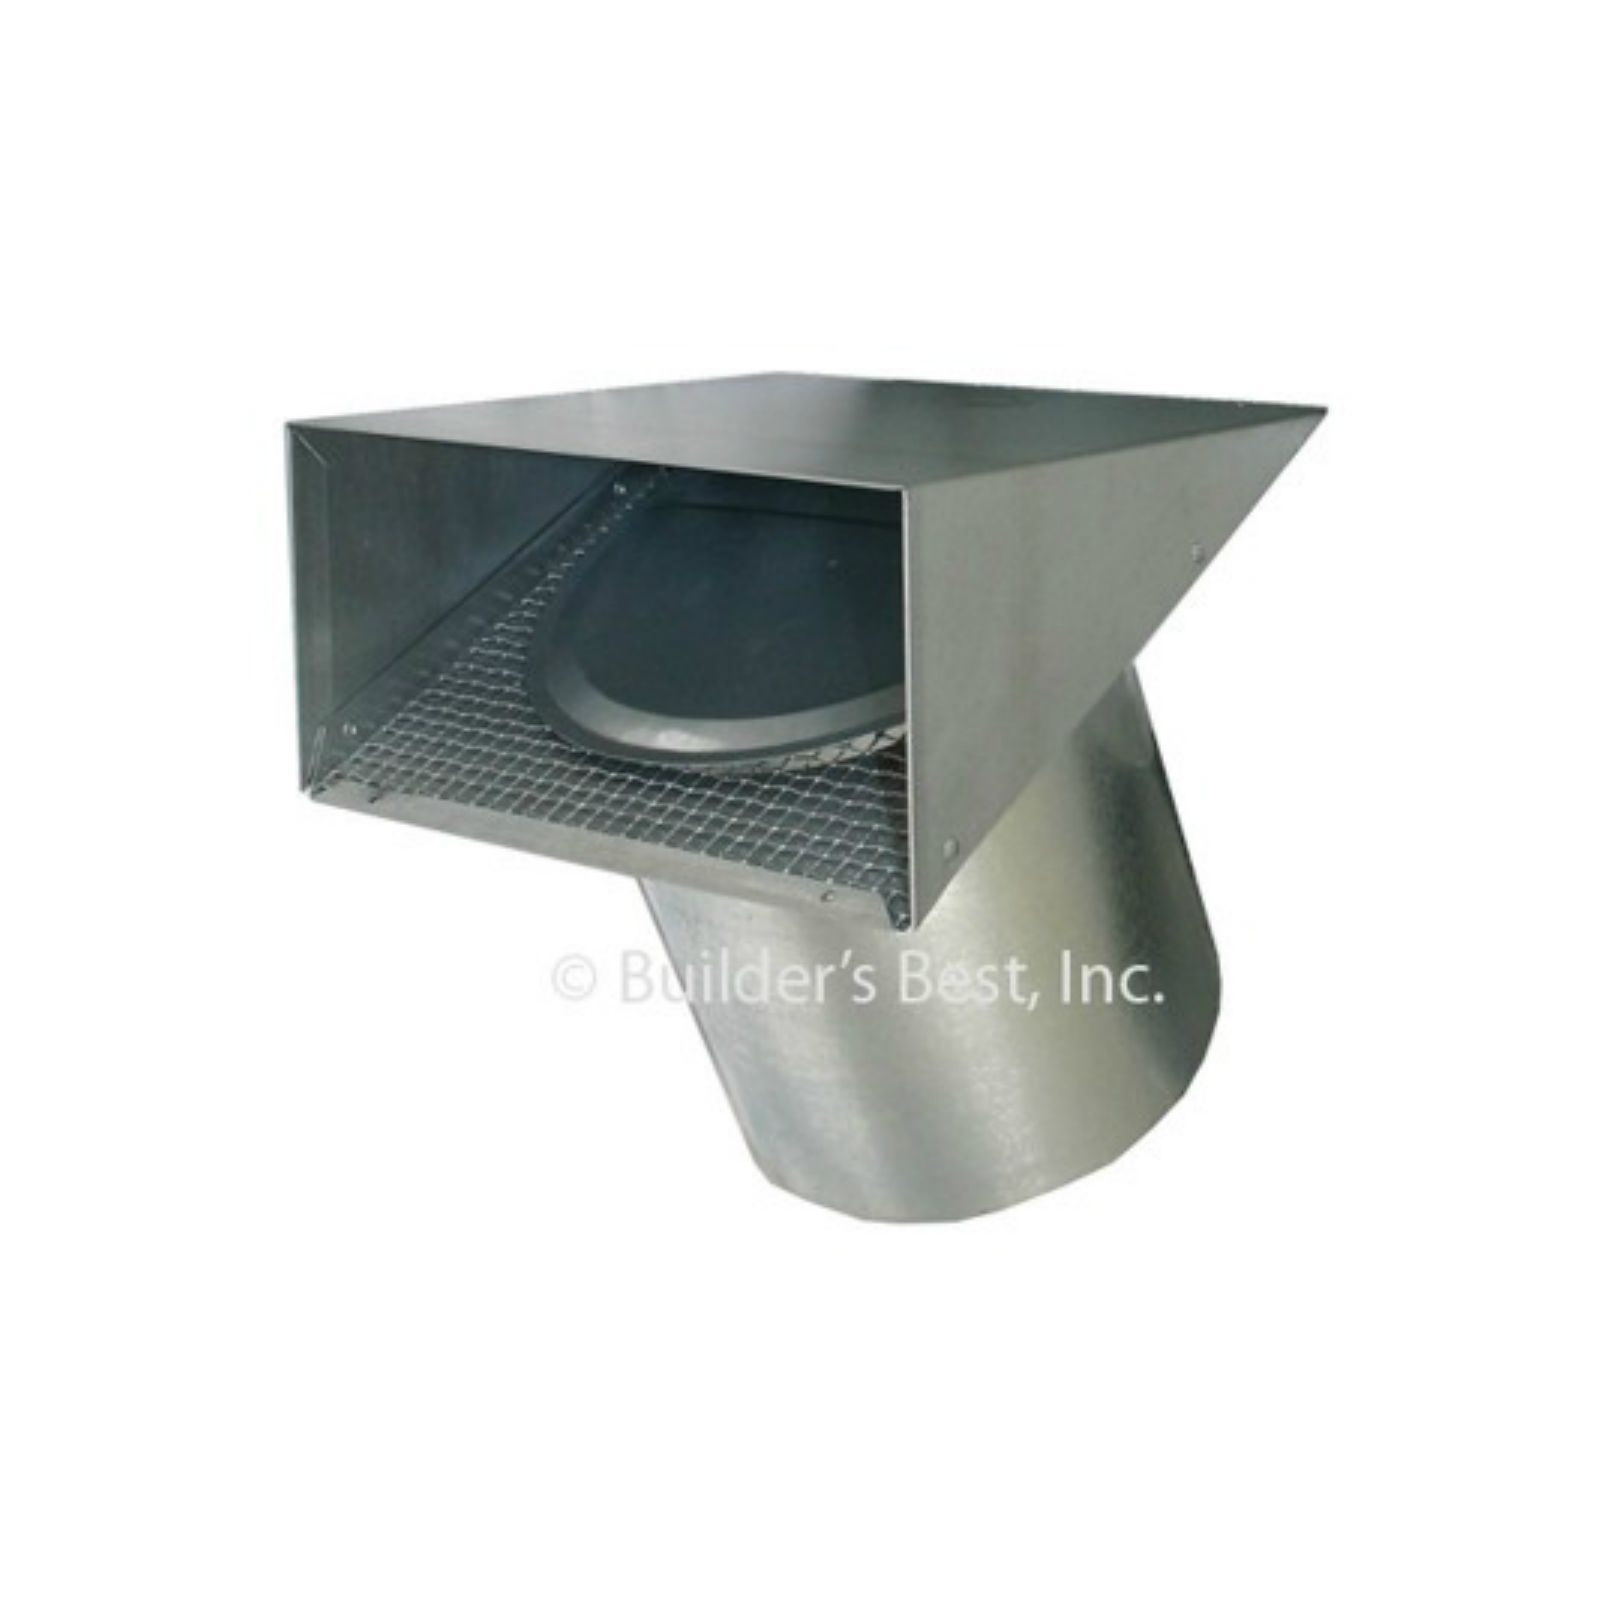 "Builder's Best 111037 - Heavy Duty Galvanized Vent Hood, Tail Included, 6"" X 6"" With Flapper And Screen"